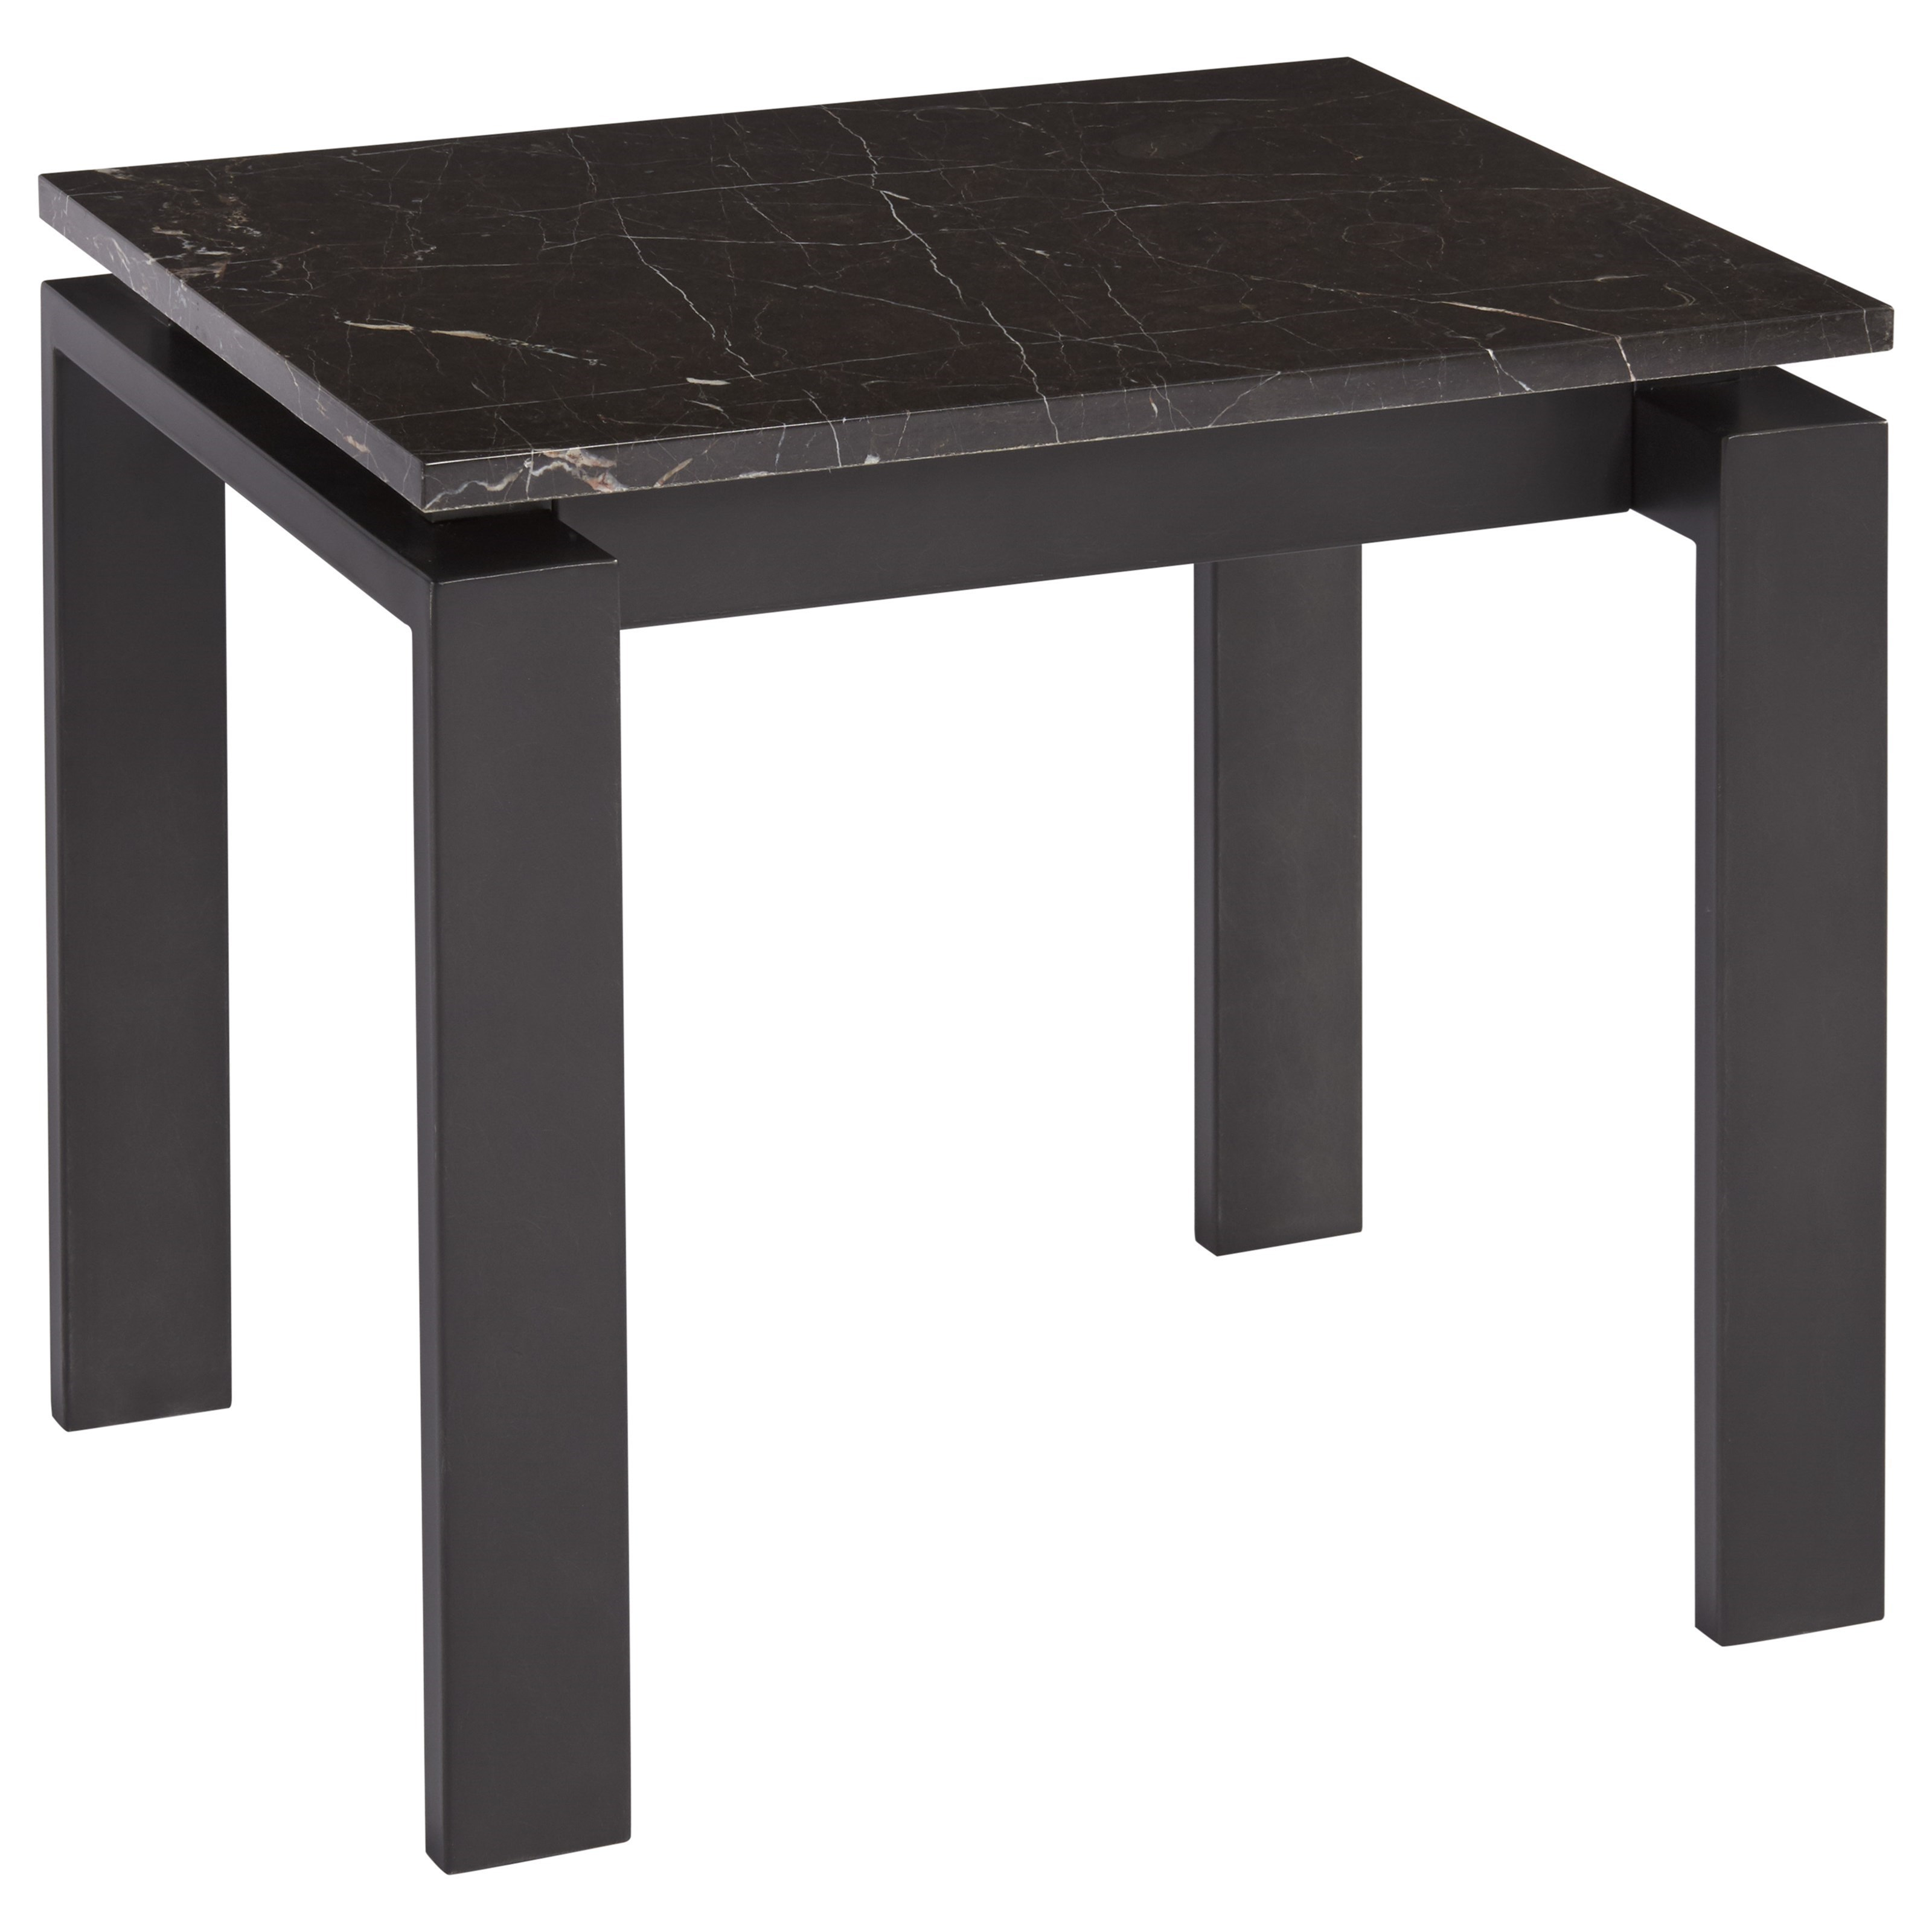 Spaces Mixed Media Vance End Table by Universal at Upper Room Home Furnishings